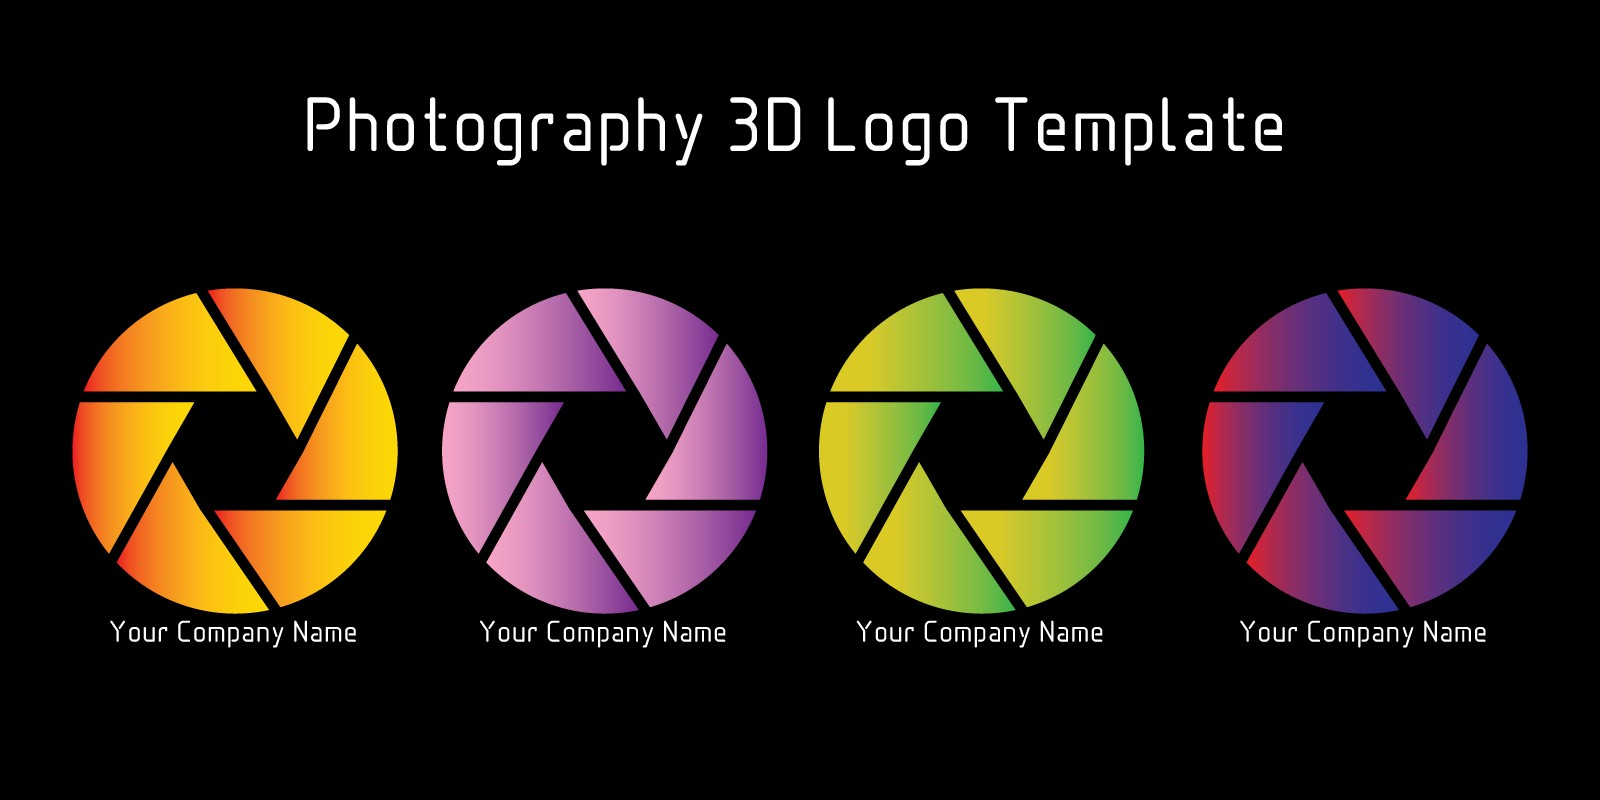 Where to find the best 3D logo templates?